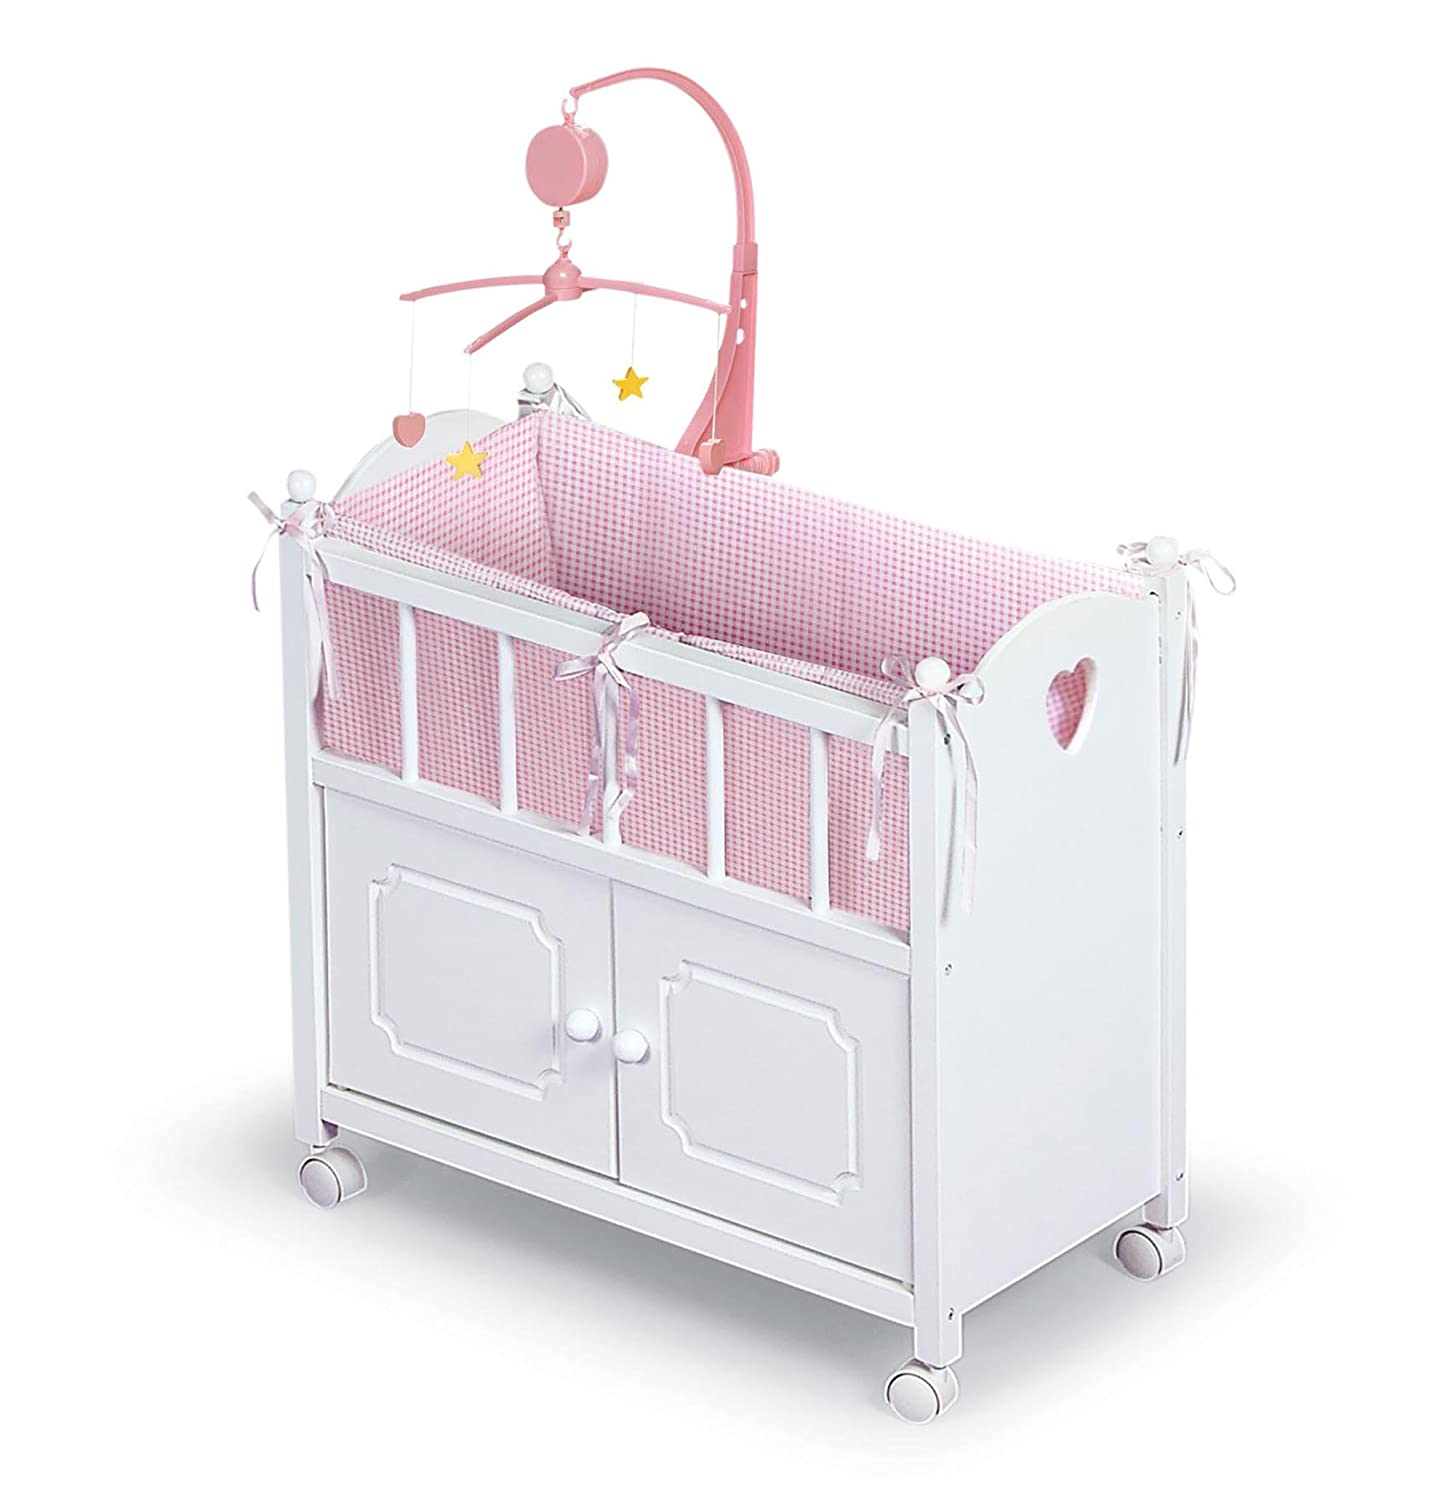 Badger Basket White Doll Crib with Cabinet/Bedding/Mobile/Wheels (fits American Girl dolls) via Amazon